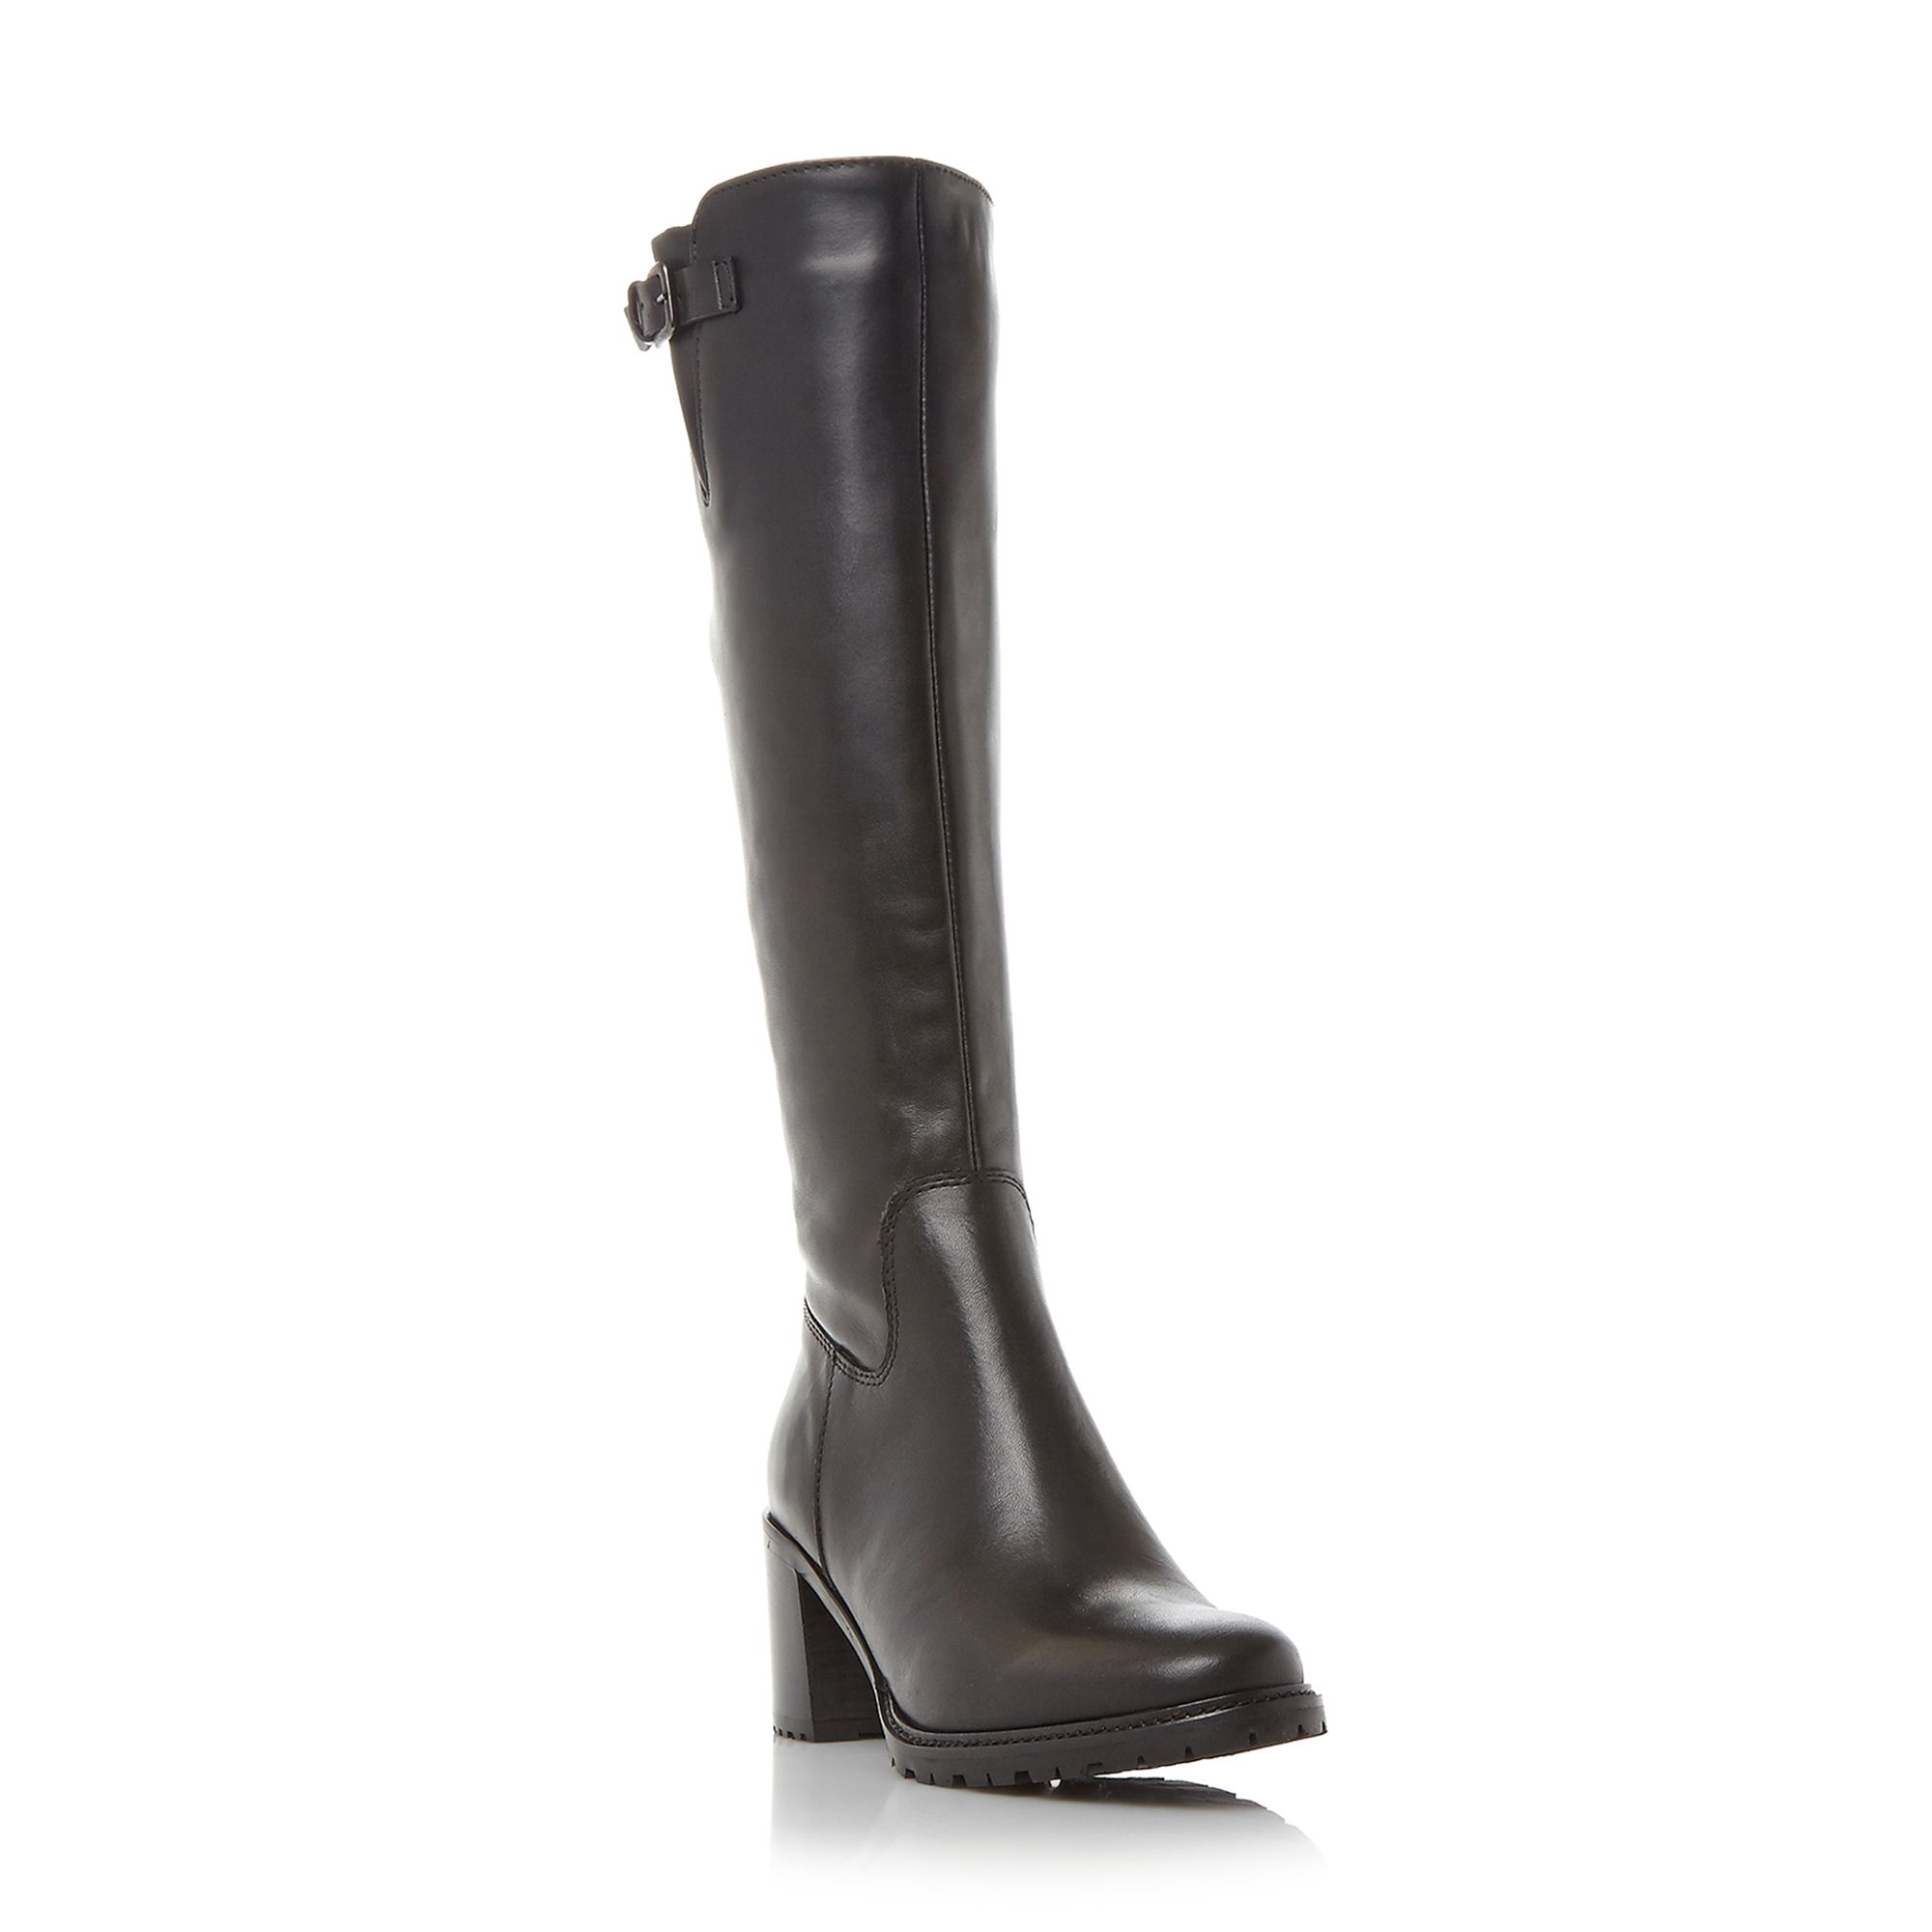 Dune Todd cleated high boots Black